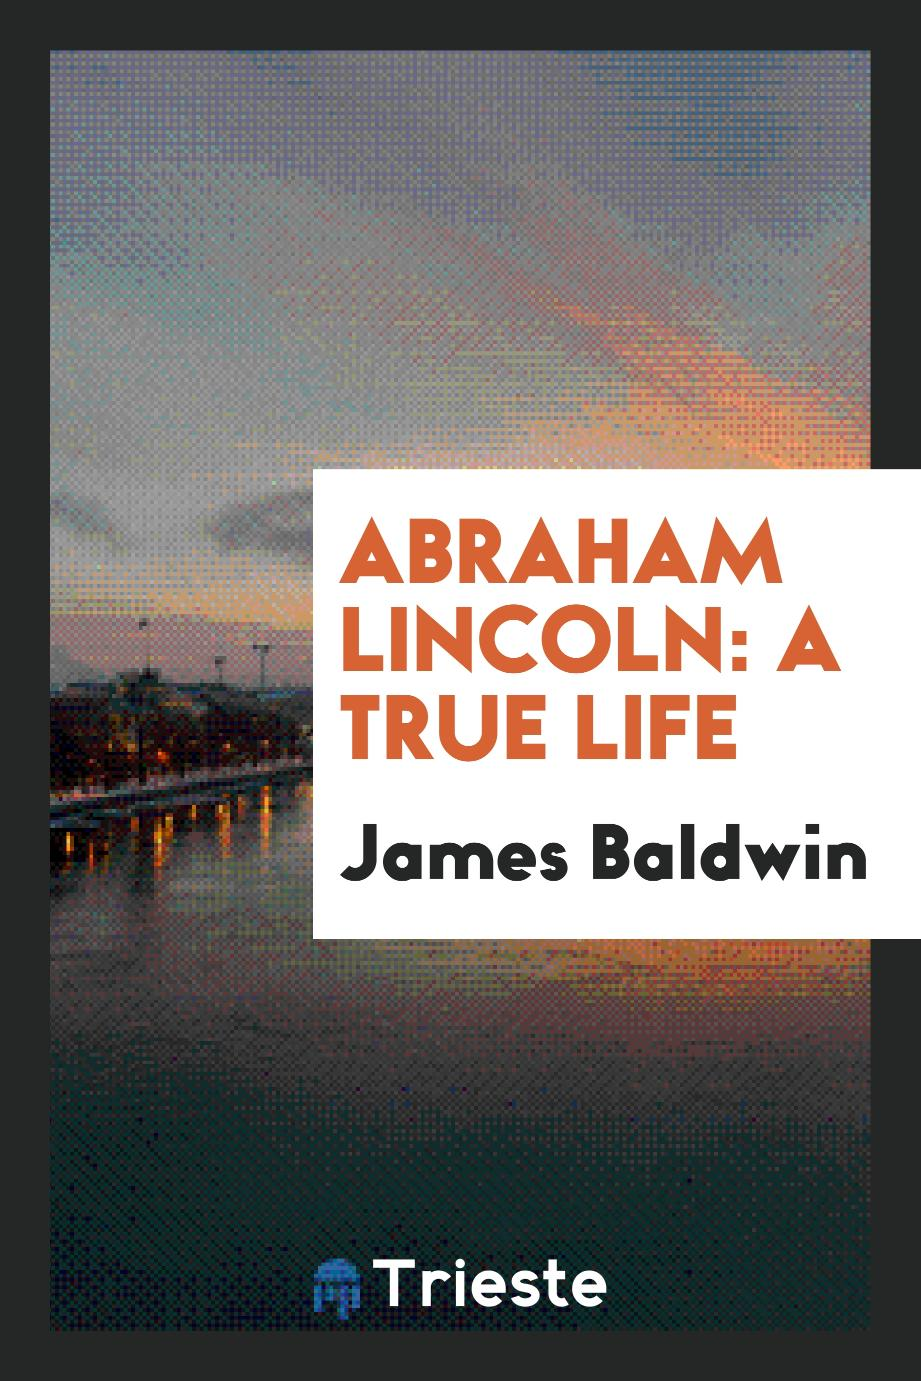 Abraham Lincoln: A True Life